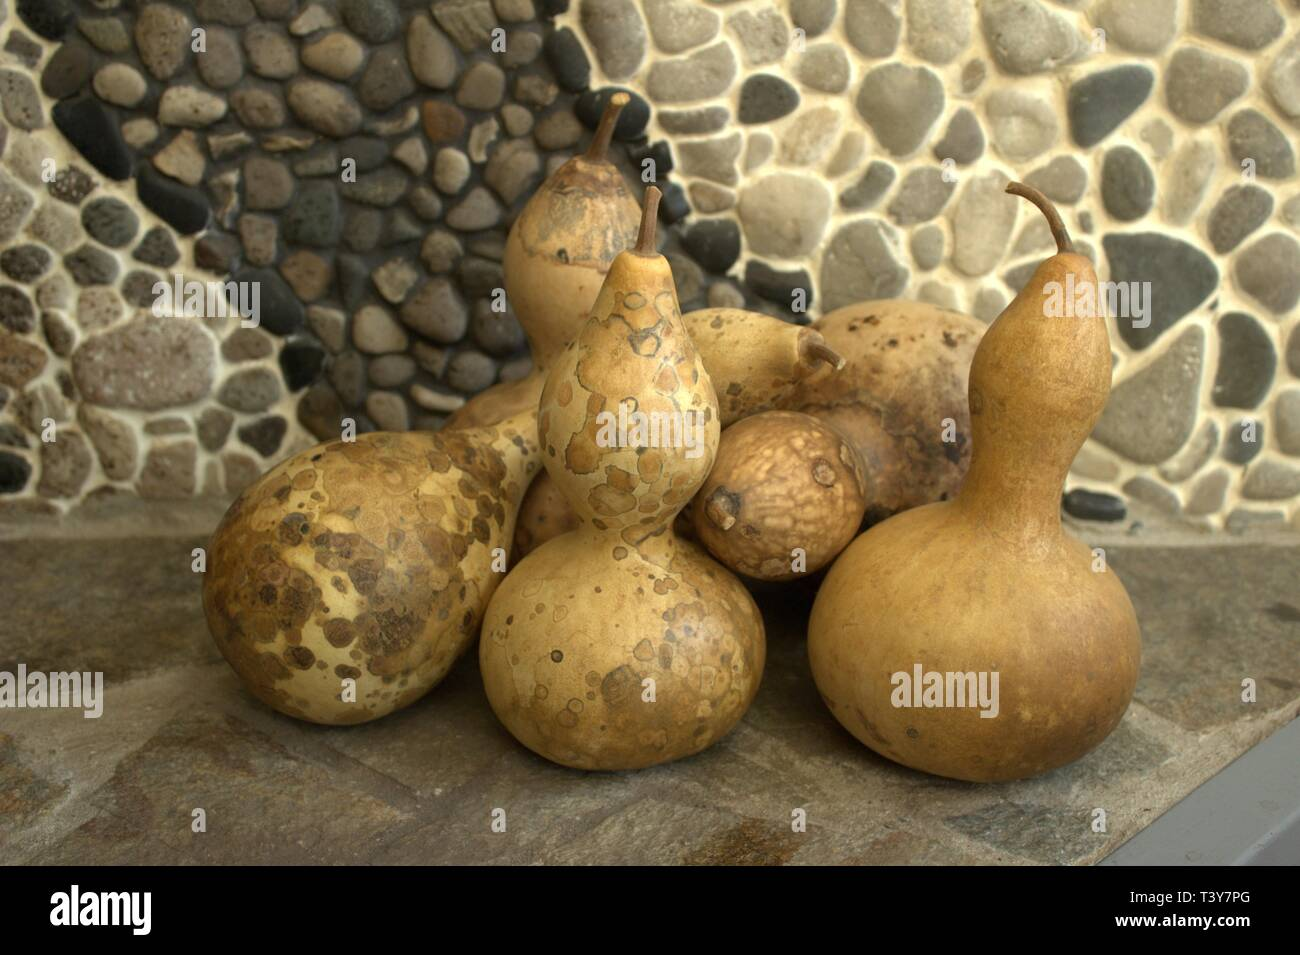 A Pile Of Dried Bottle Gourds, Ready For Crafting - Stock Image